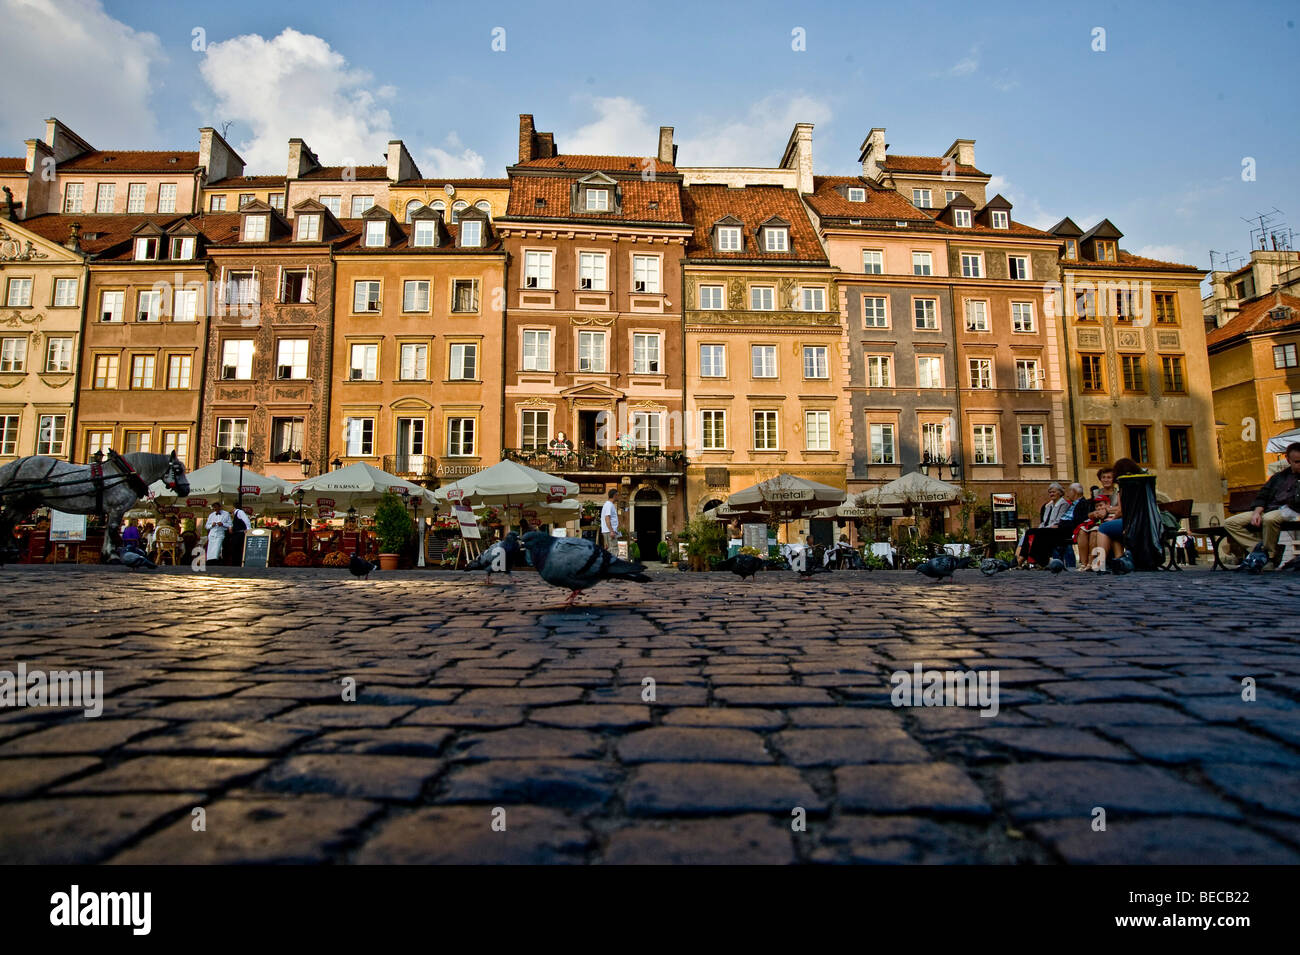 Market square in the historic centre of Warsaw, Poland, Europe - Stock Image